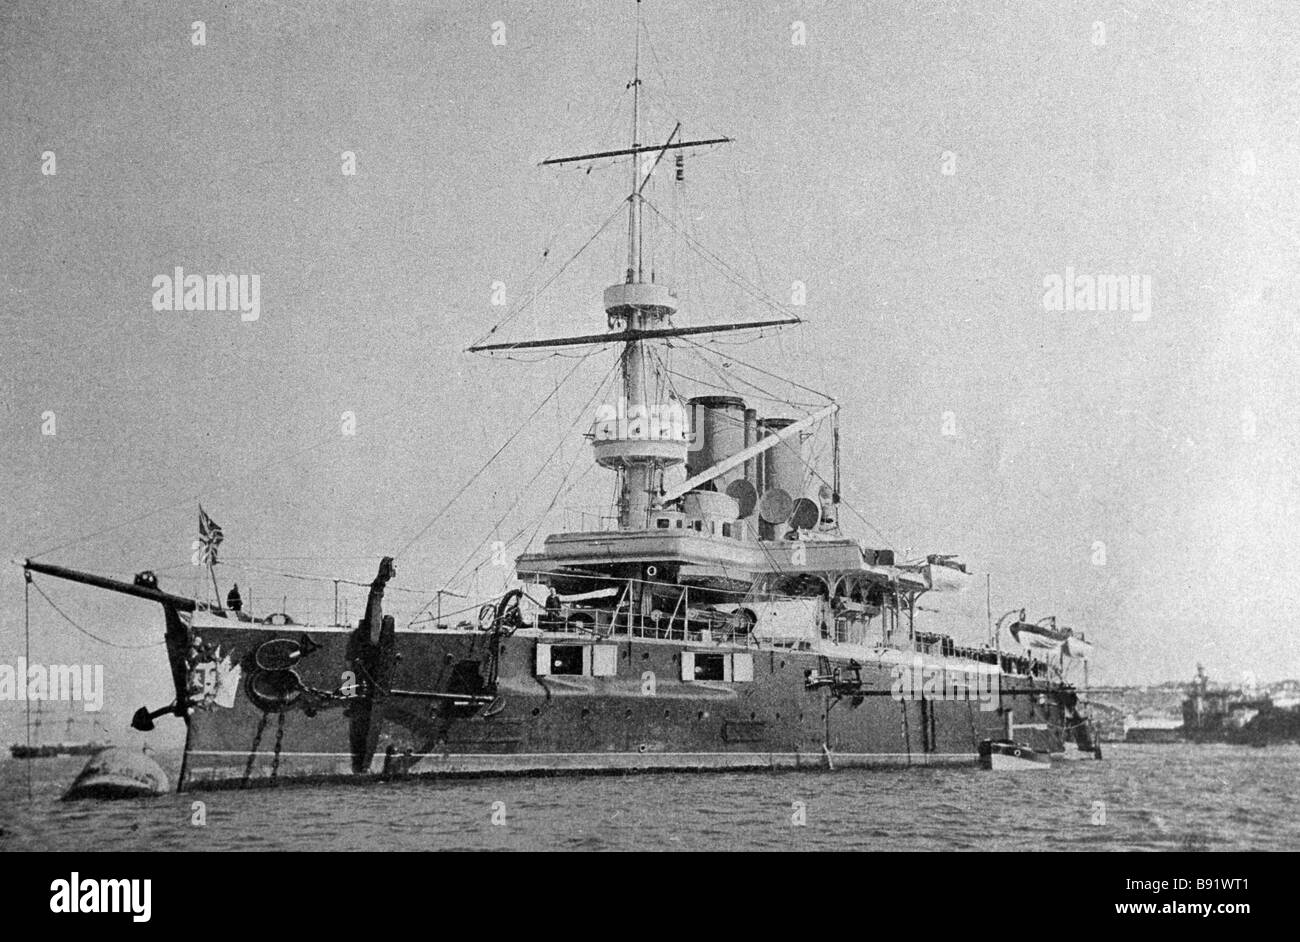 Battleship St George from the collection of the History Museum - Stock Image